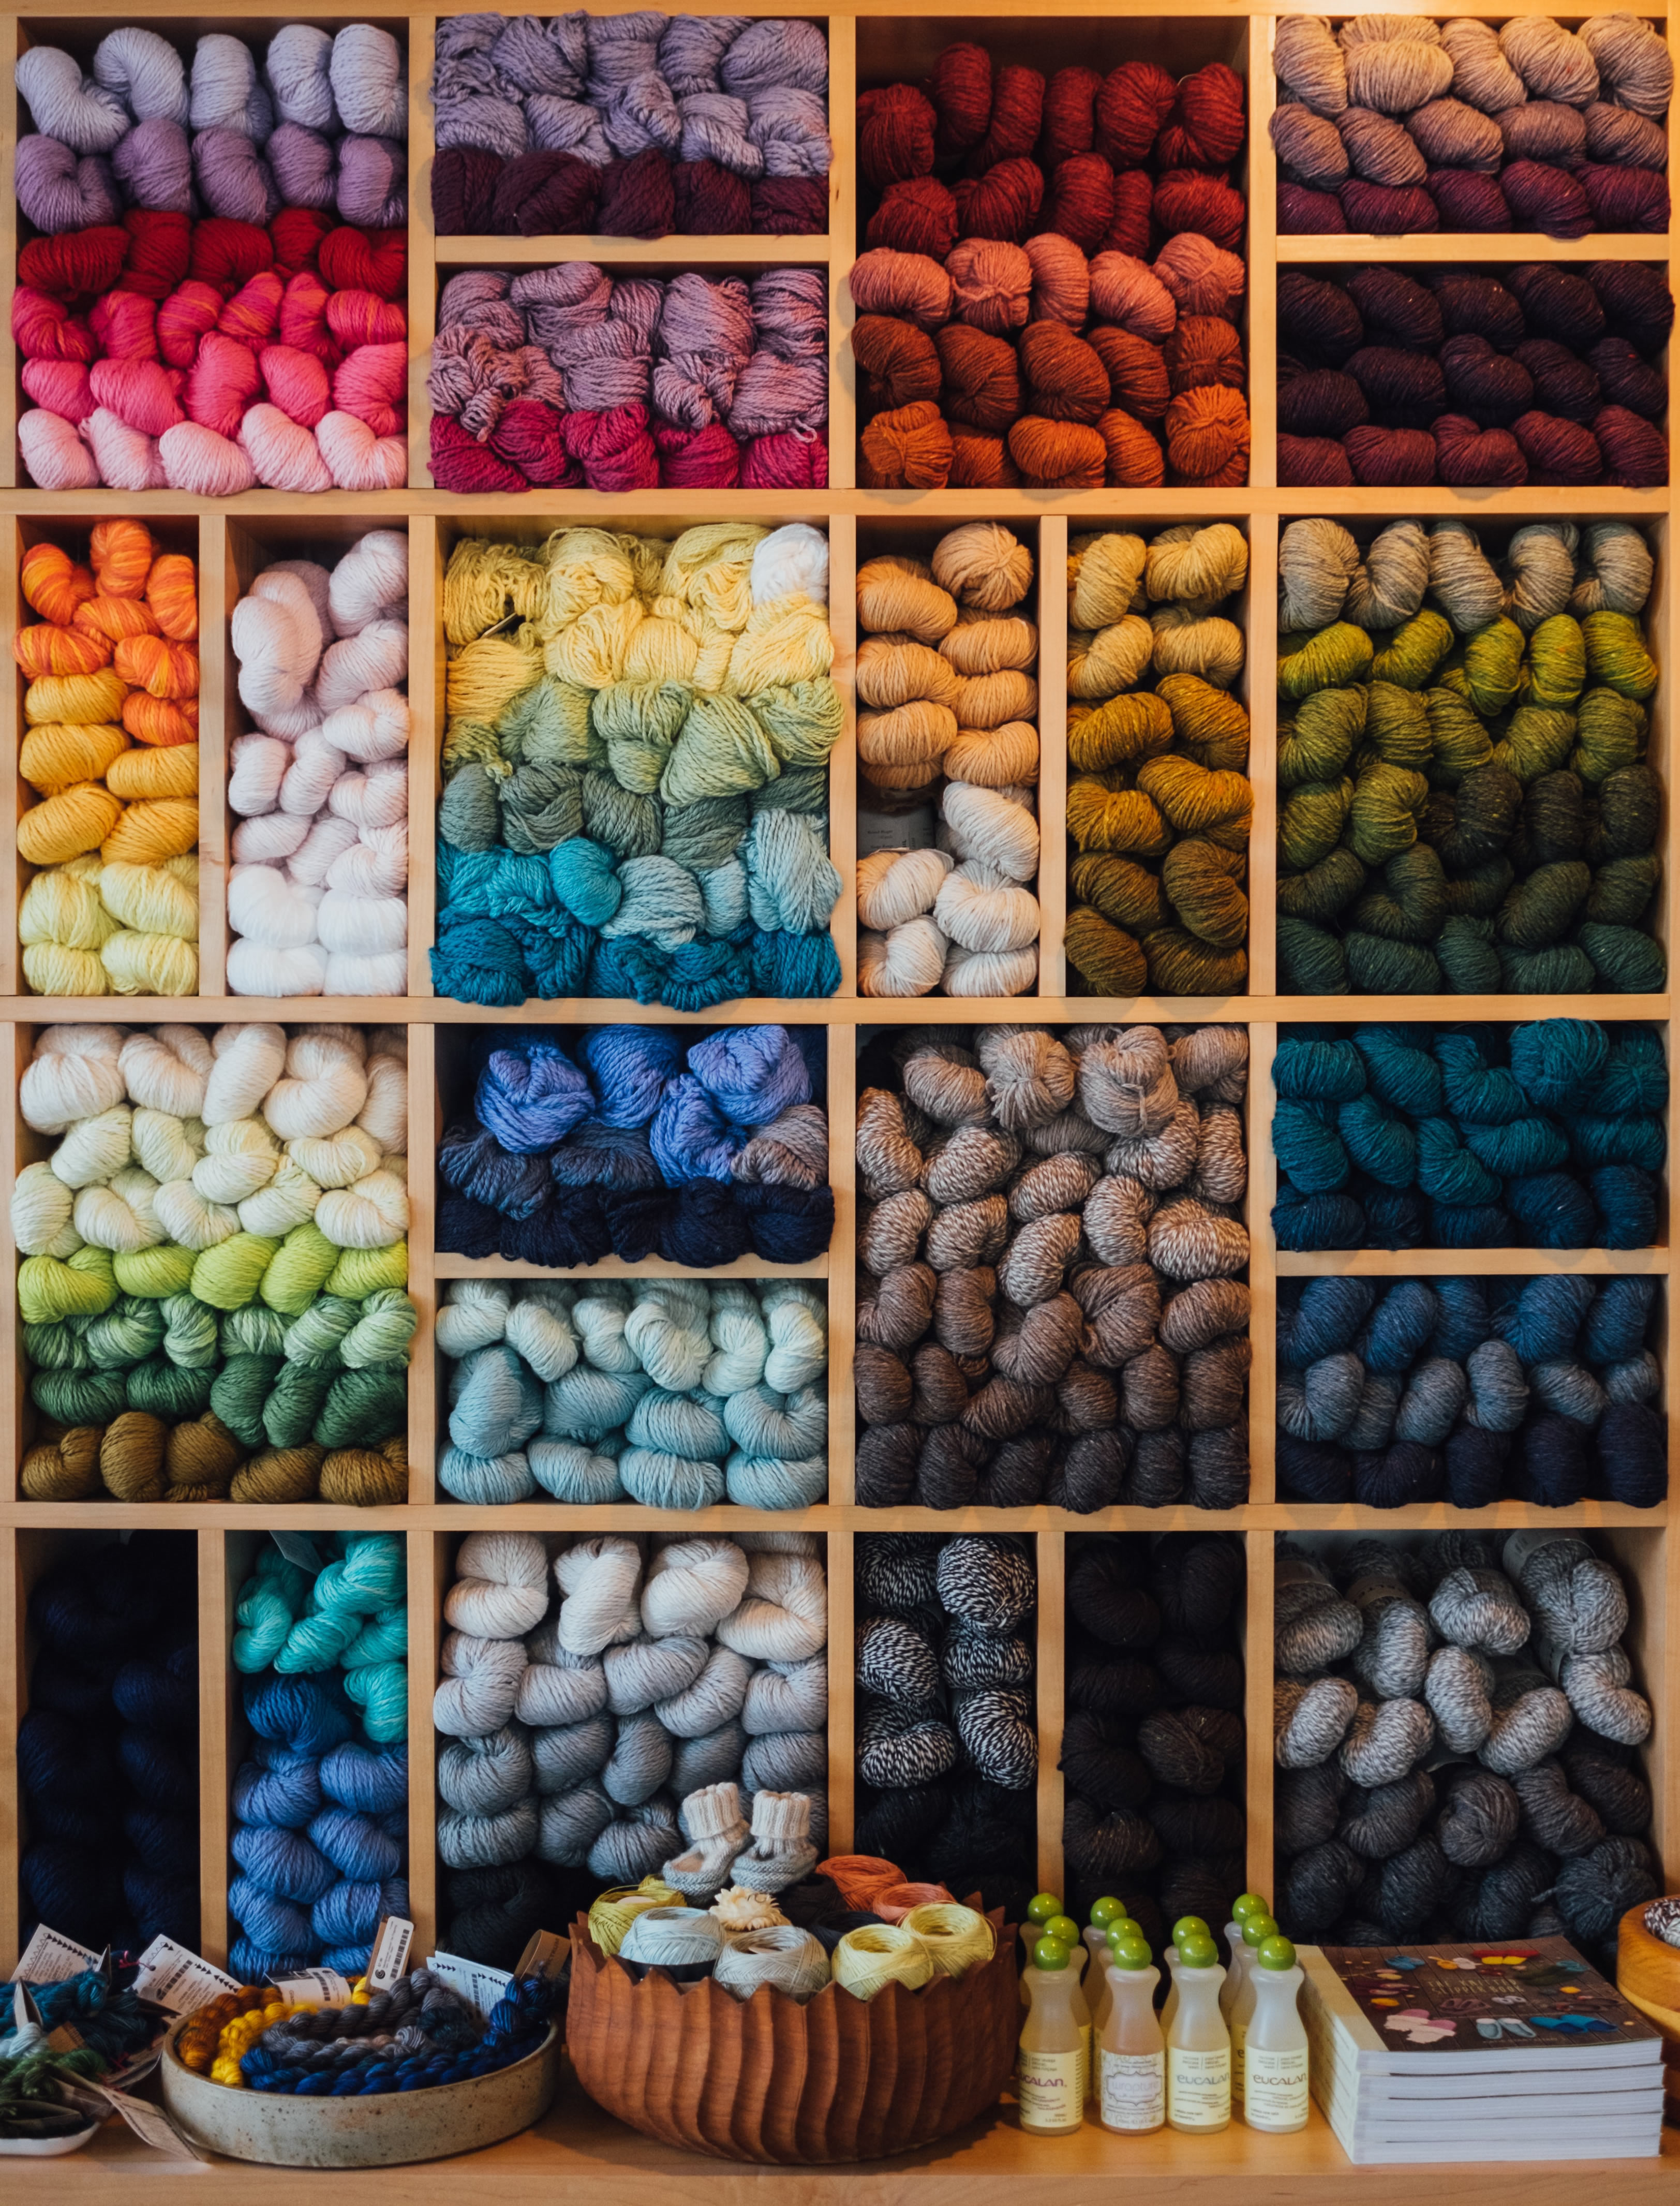 photo of cubbies filled with yarn